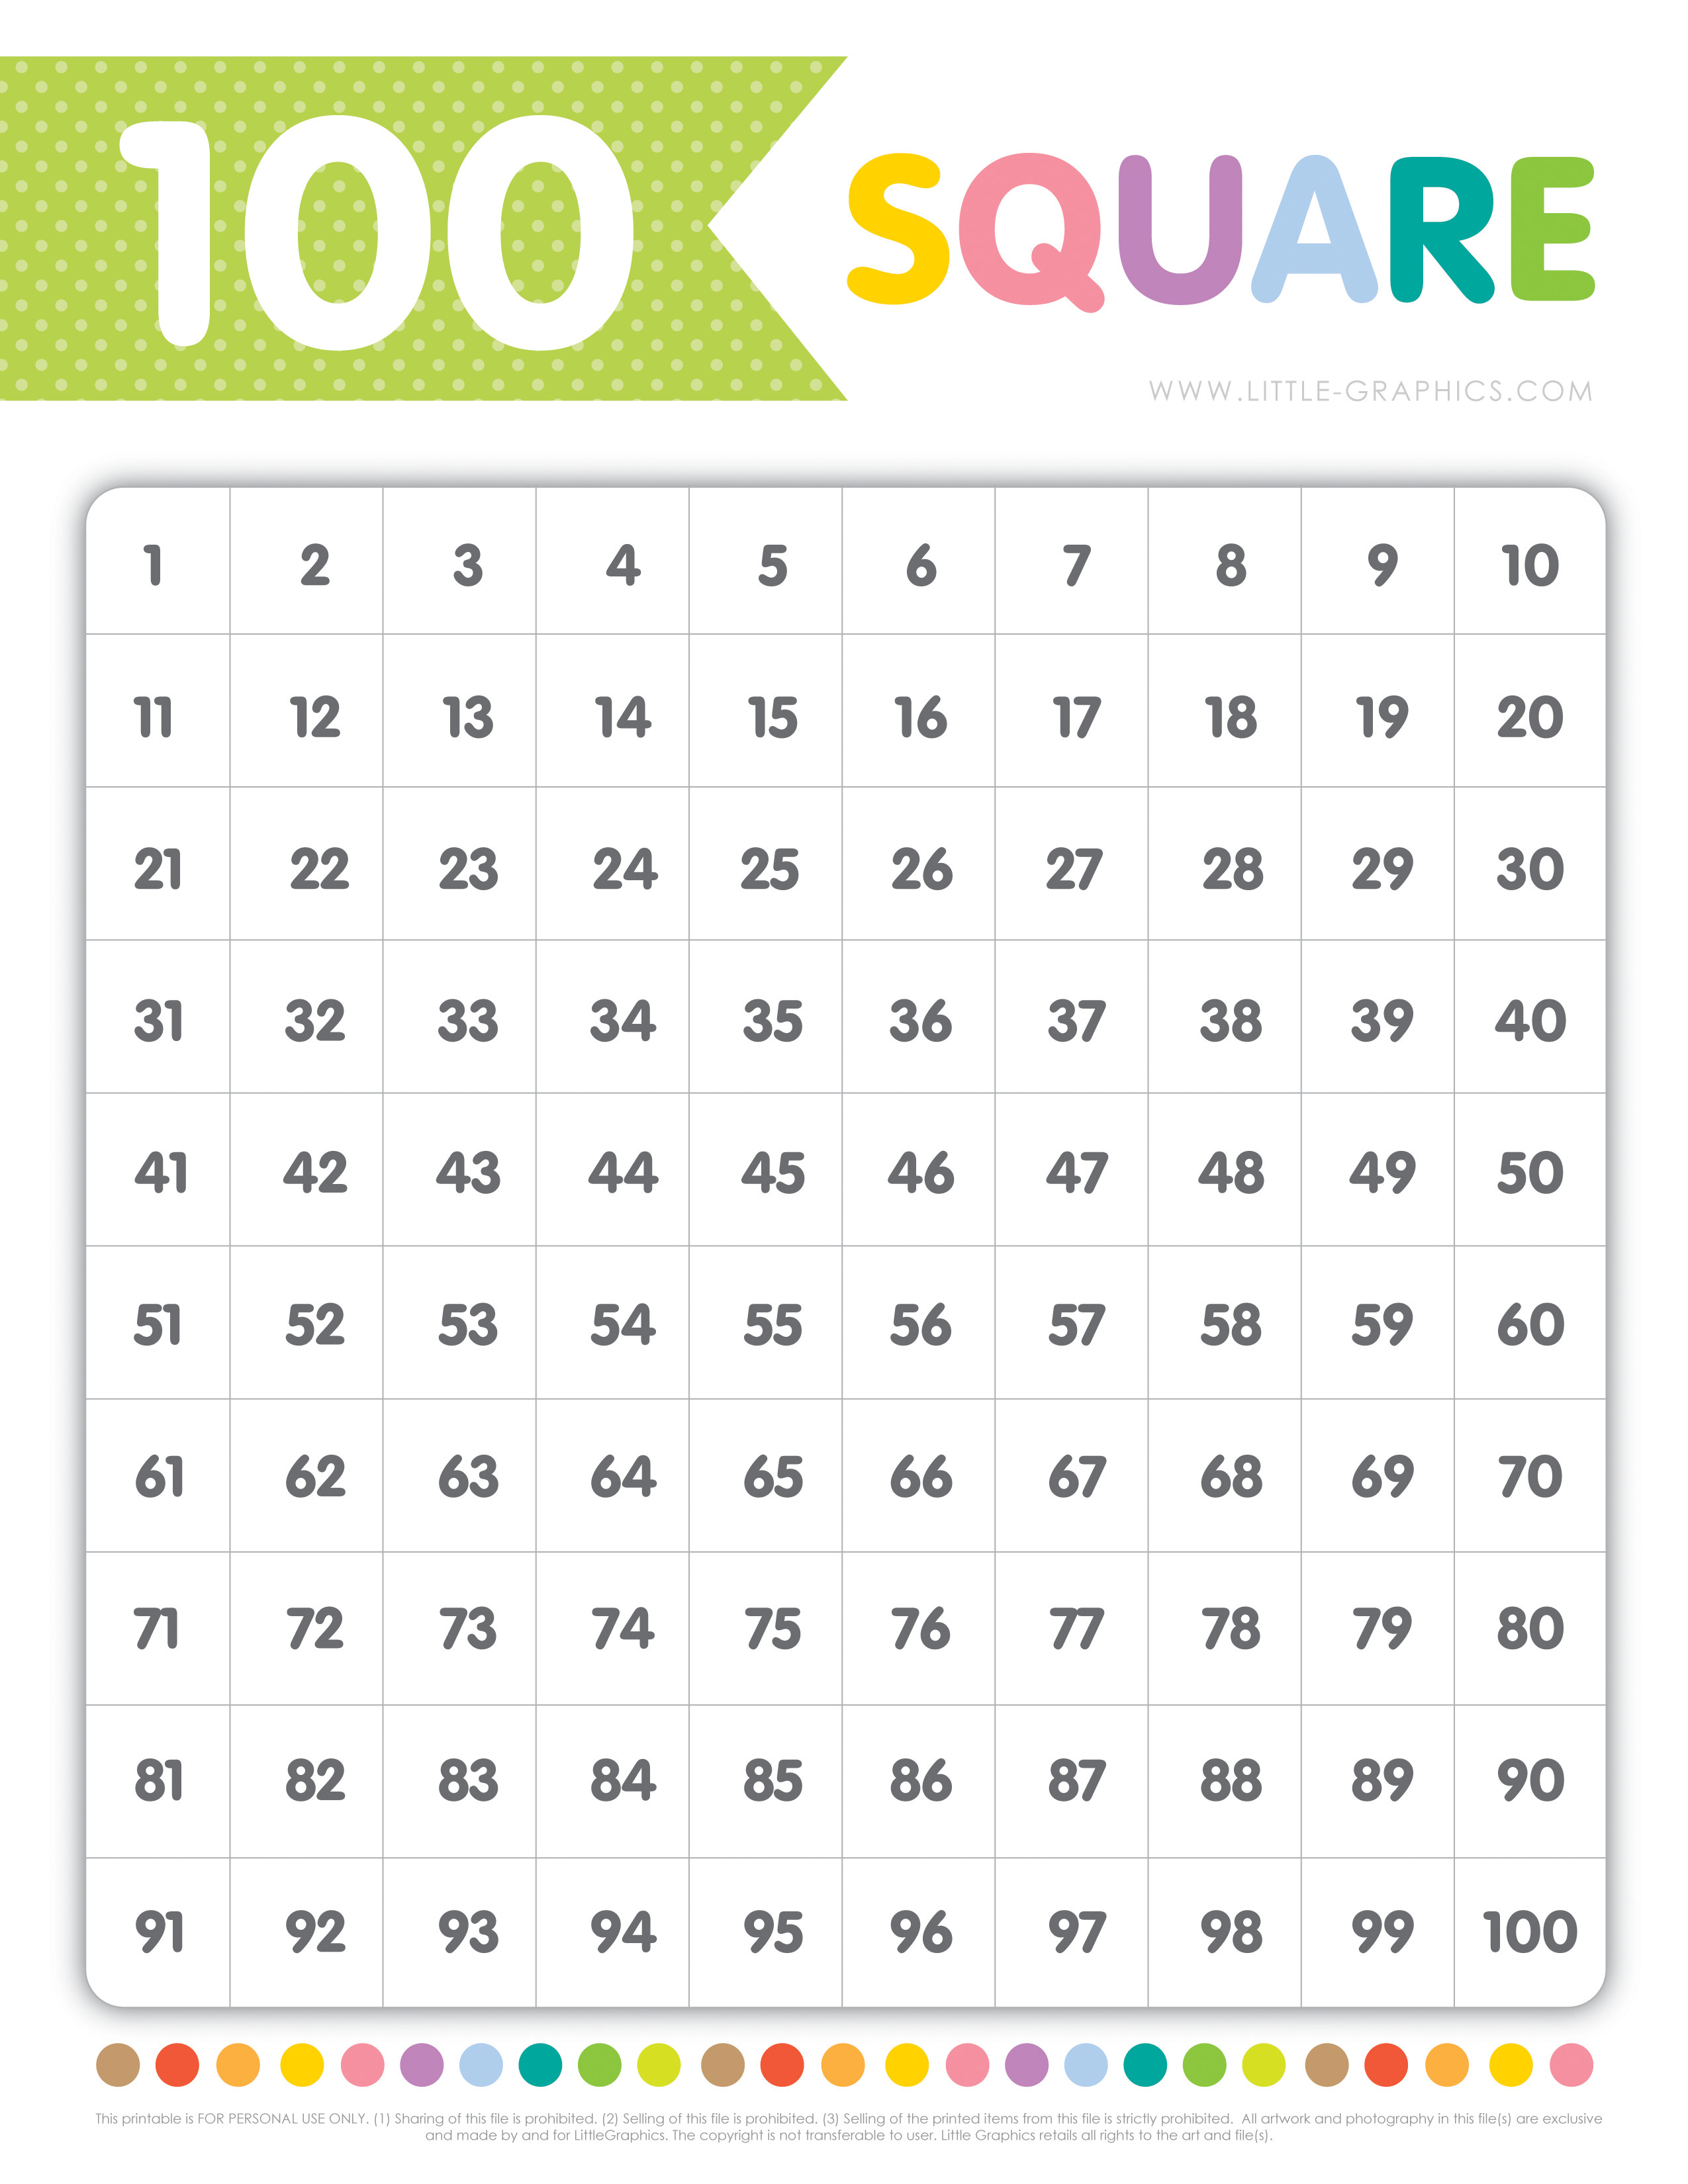 100 Square Chart Free Download | Little Graphics